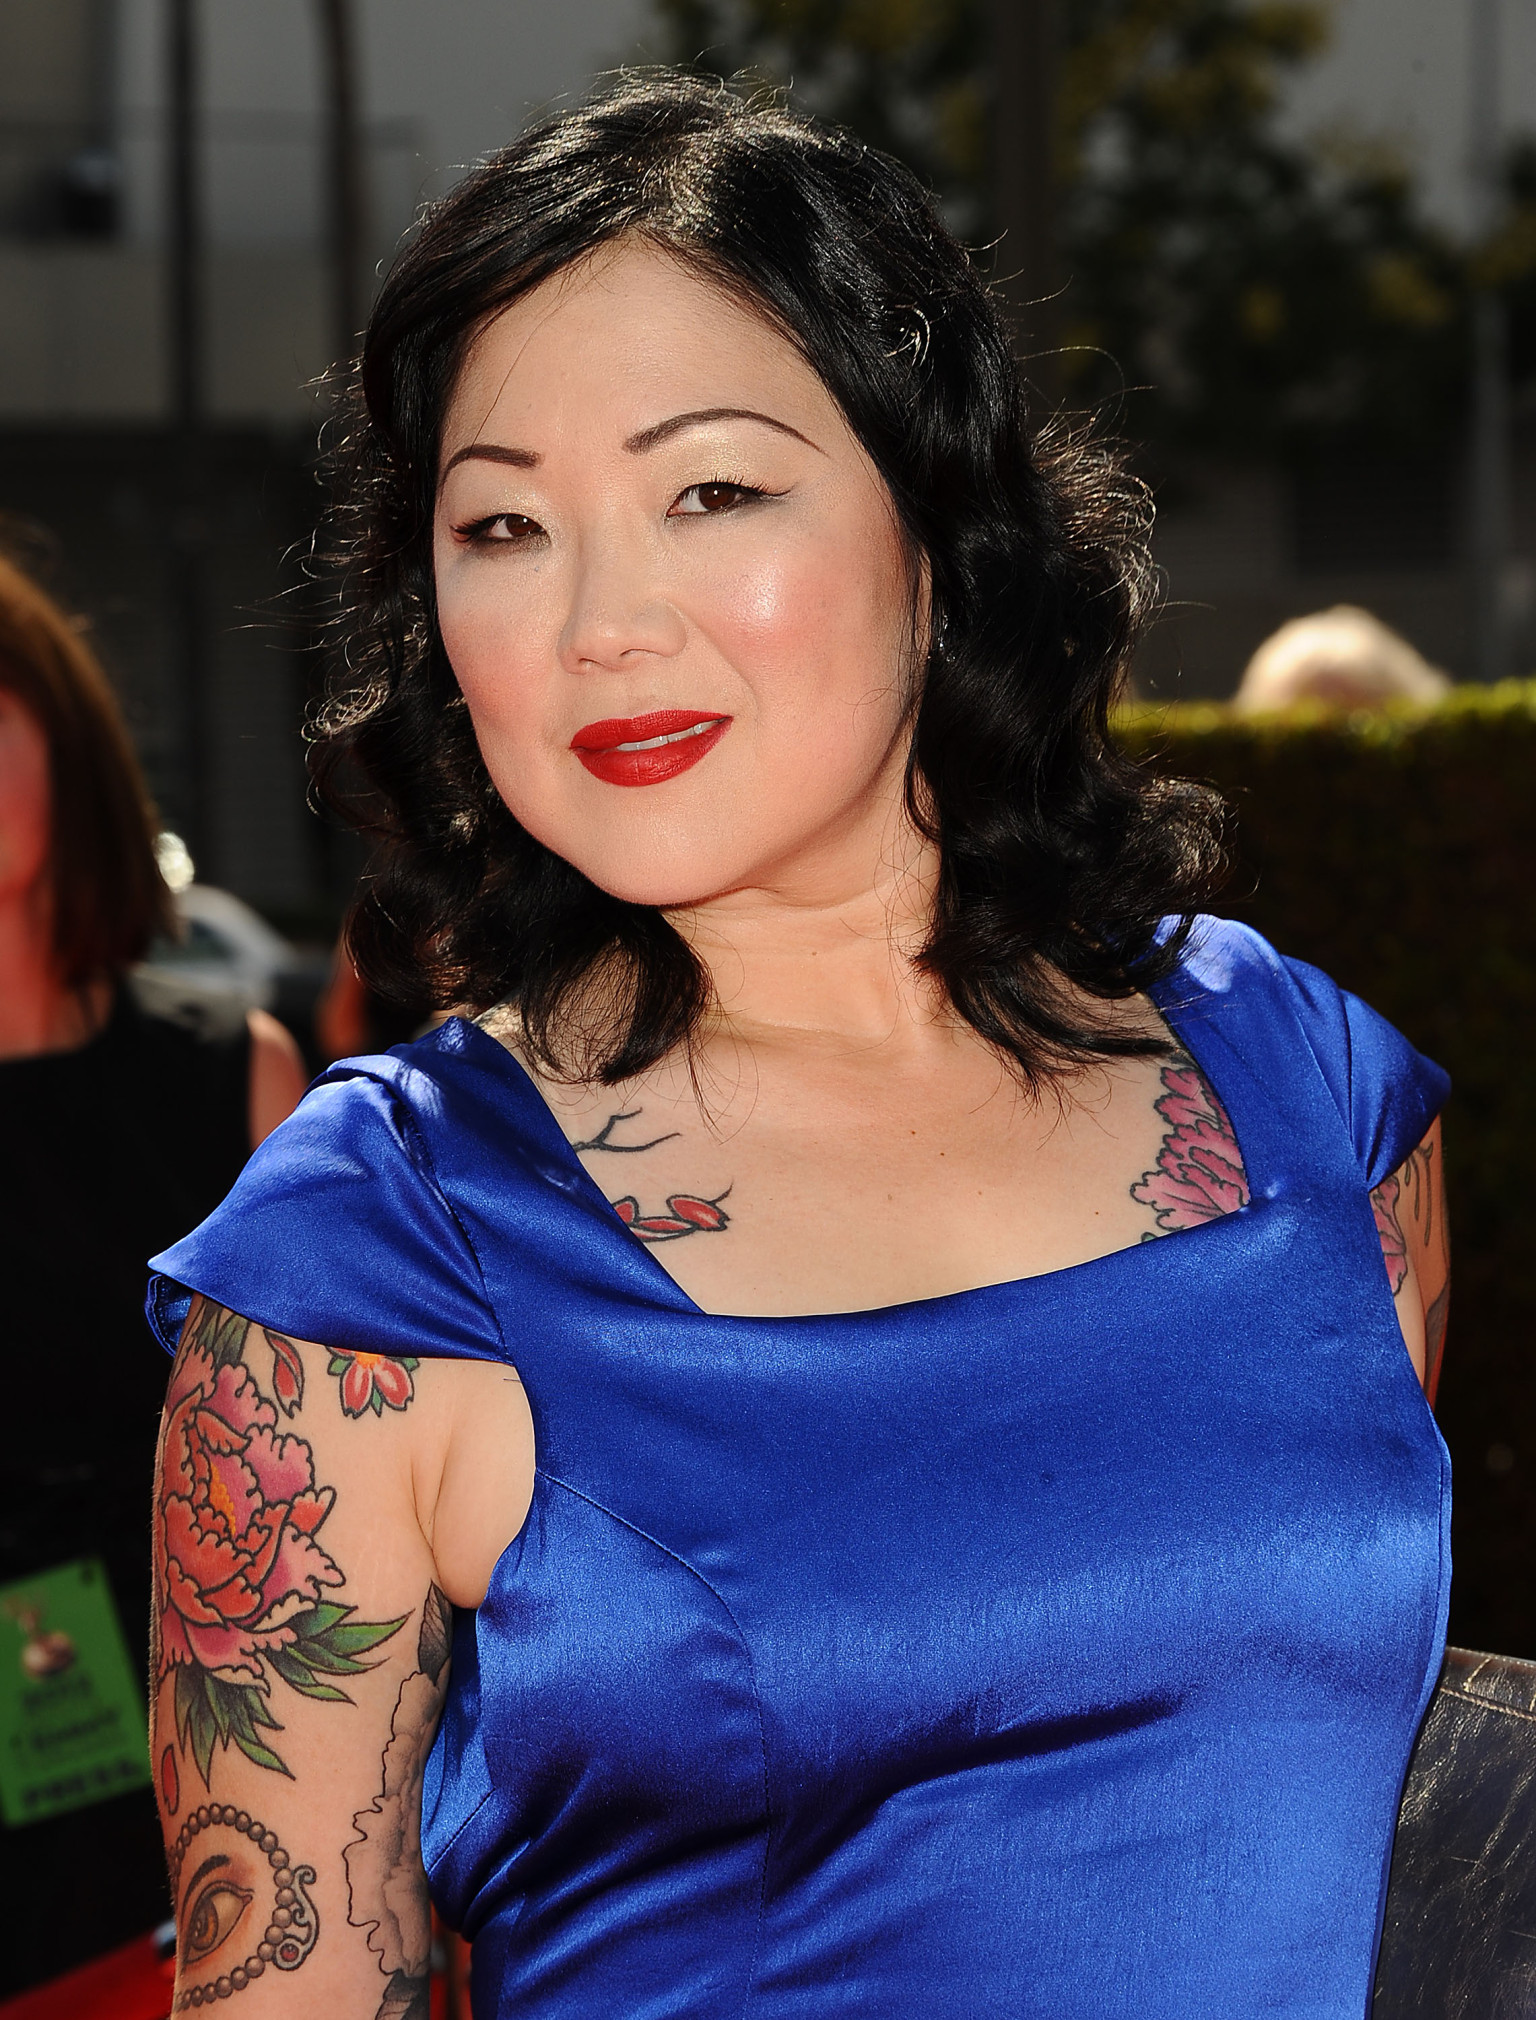 margaret cho imdbmargaret cho tilda swinton, margaret cho stand up, margaret cho books, margaret cho young, margaret cho imdb, margaret cho fat, margaret cho john travolta, margaret cho husband al ridenour, margaret cho beautiful, margaret cho tattoos